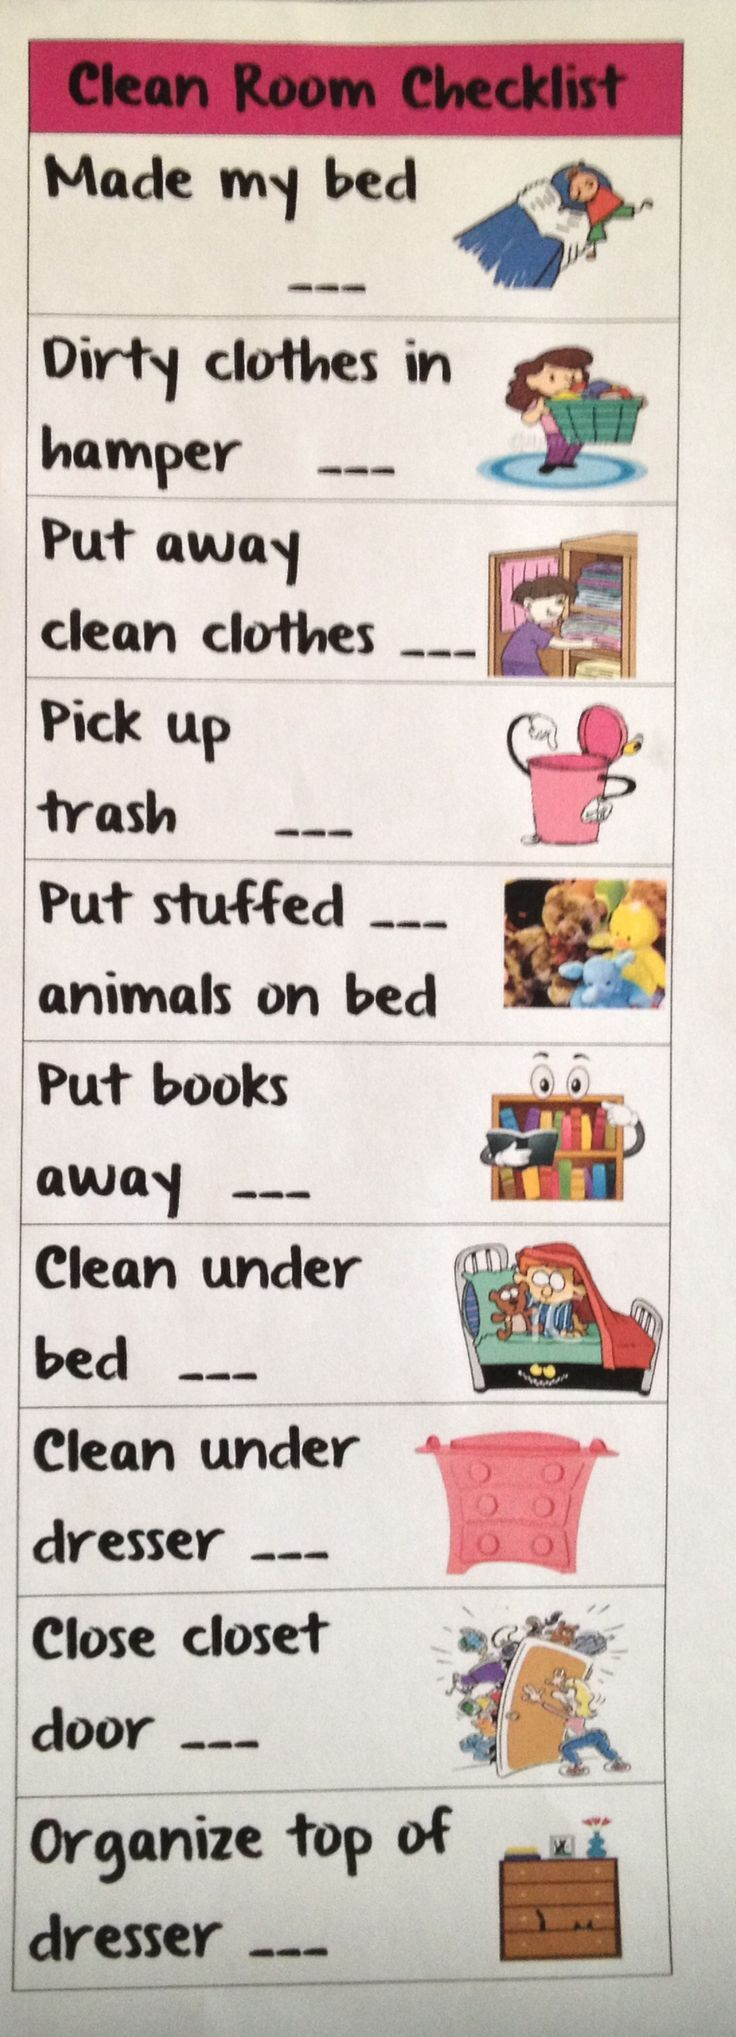 17 best images about life skills social skills clean room checklist for the kids laminate and use a dry erase kids have clean rooms